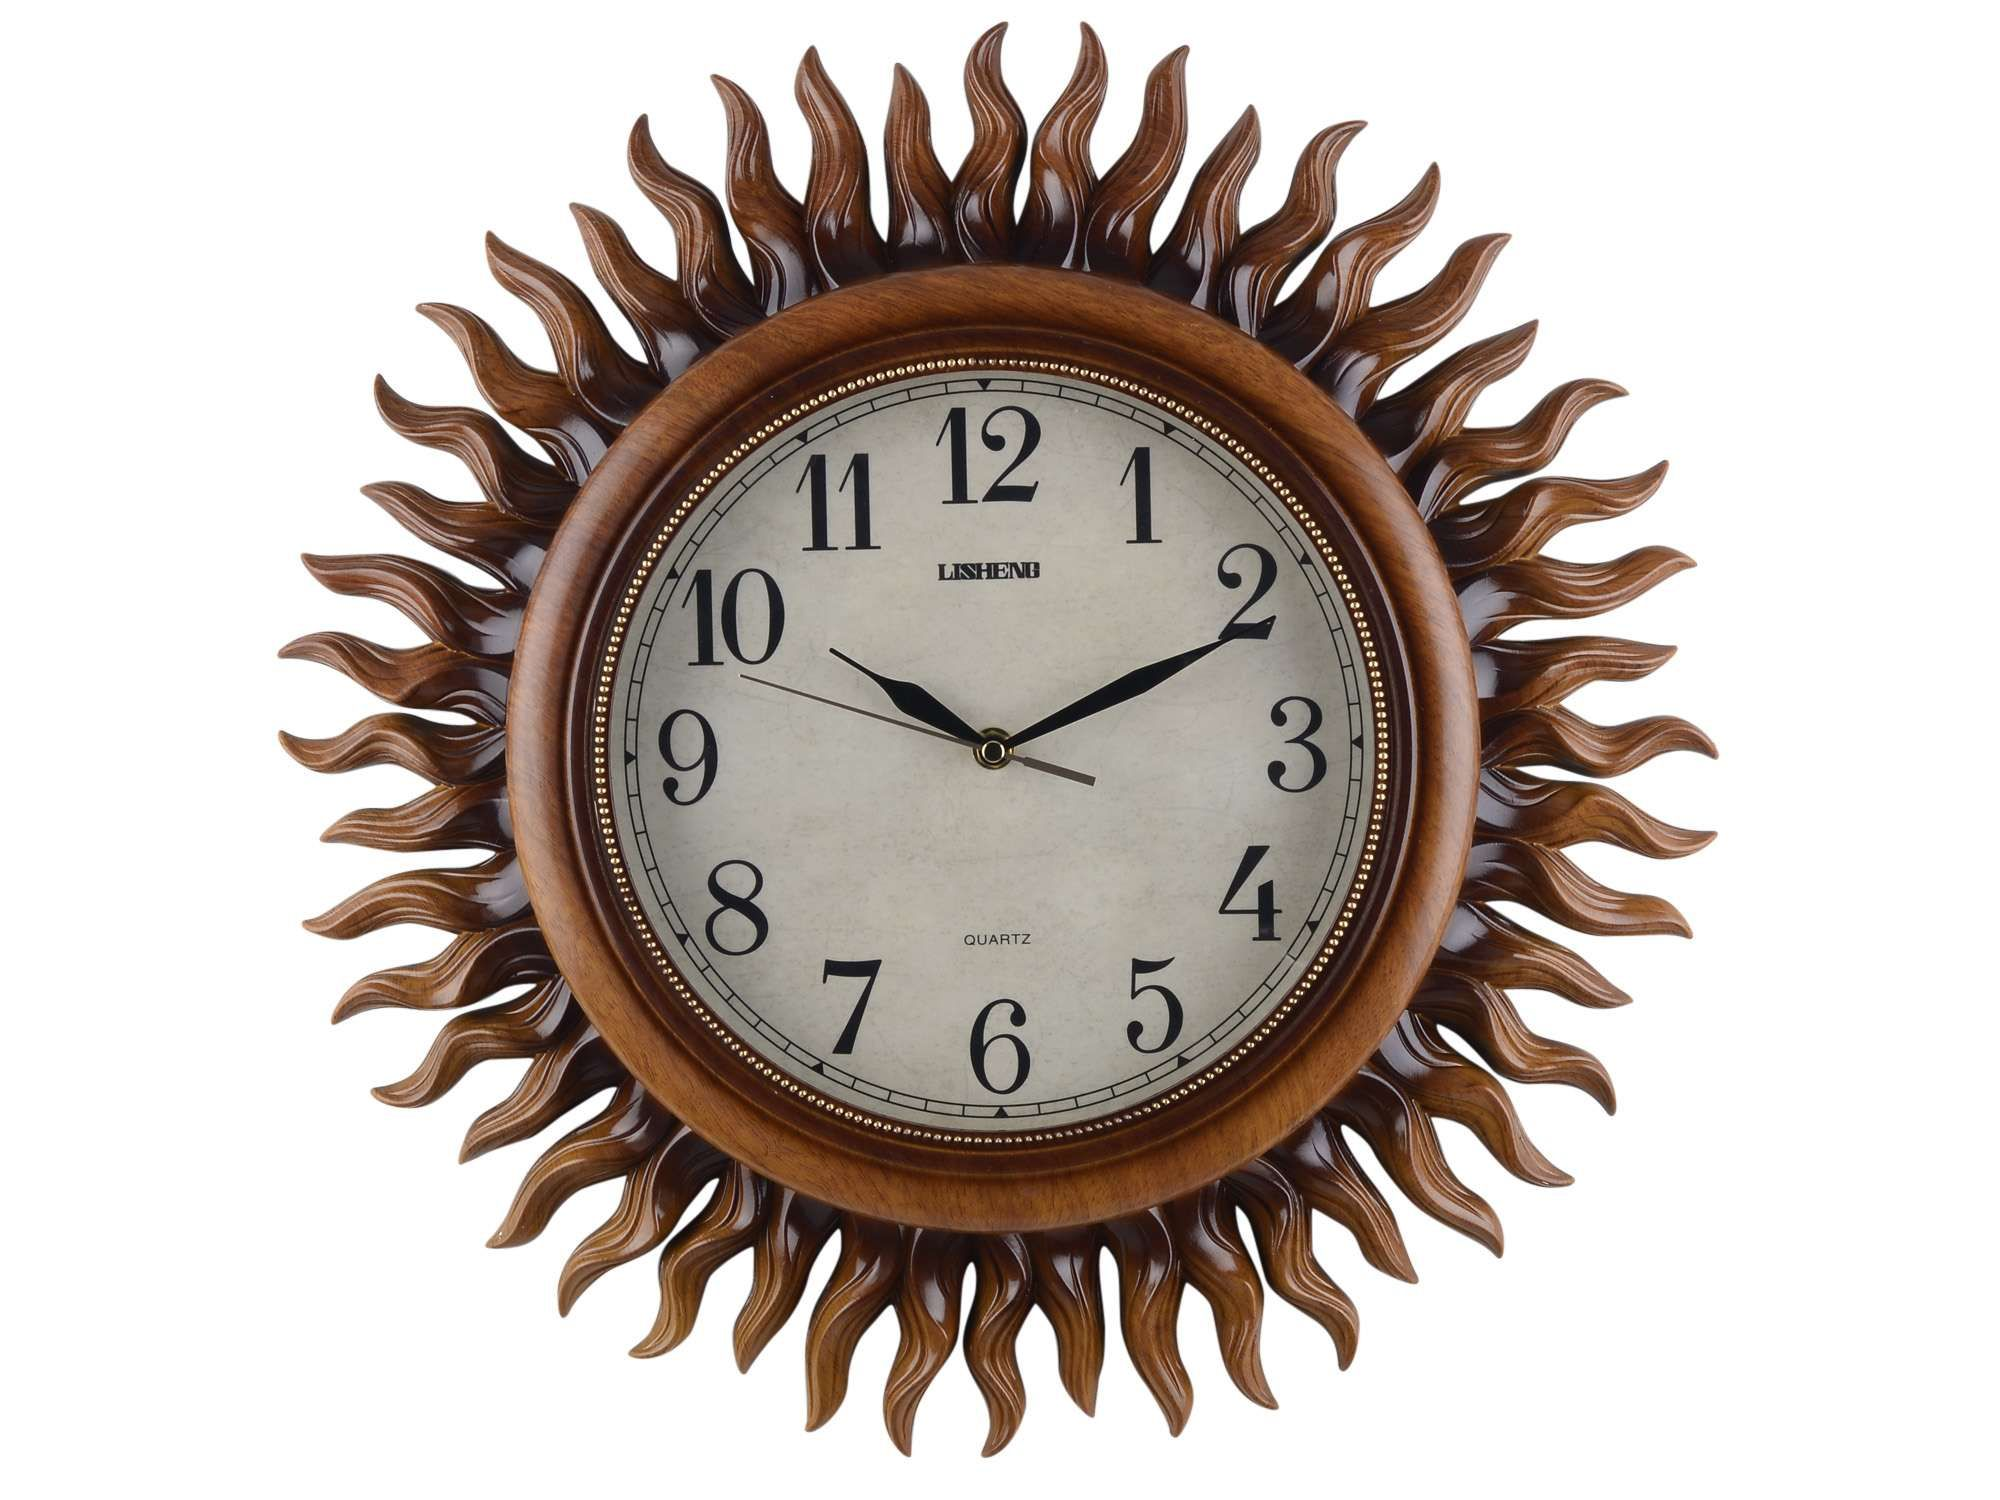 Wall Clock Sun Rays For Just Rs 2099 This Wall Clock Here Is Just Right To Give Your Home A Touch Of Splendor A Commemoration Wall Clock Brown Clocks Clock